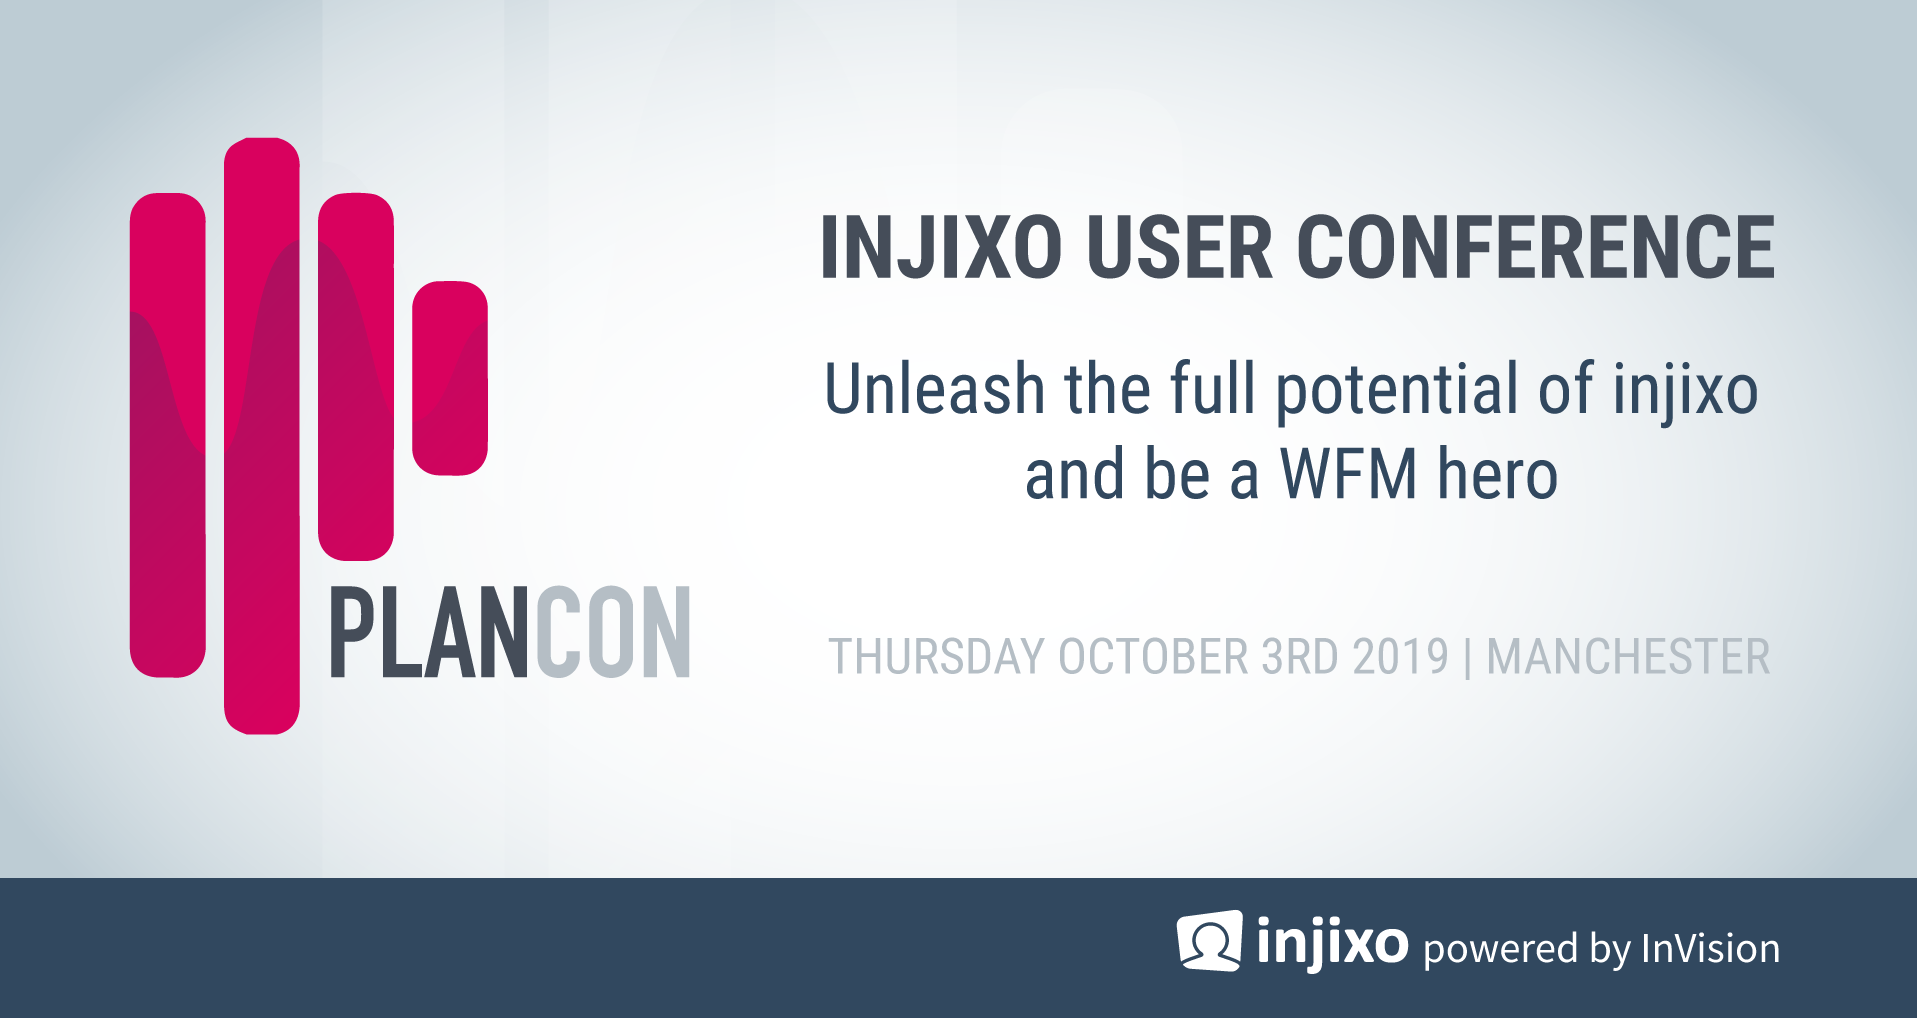 injixo-plancon-uk-2019-user-conference